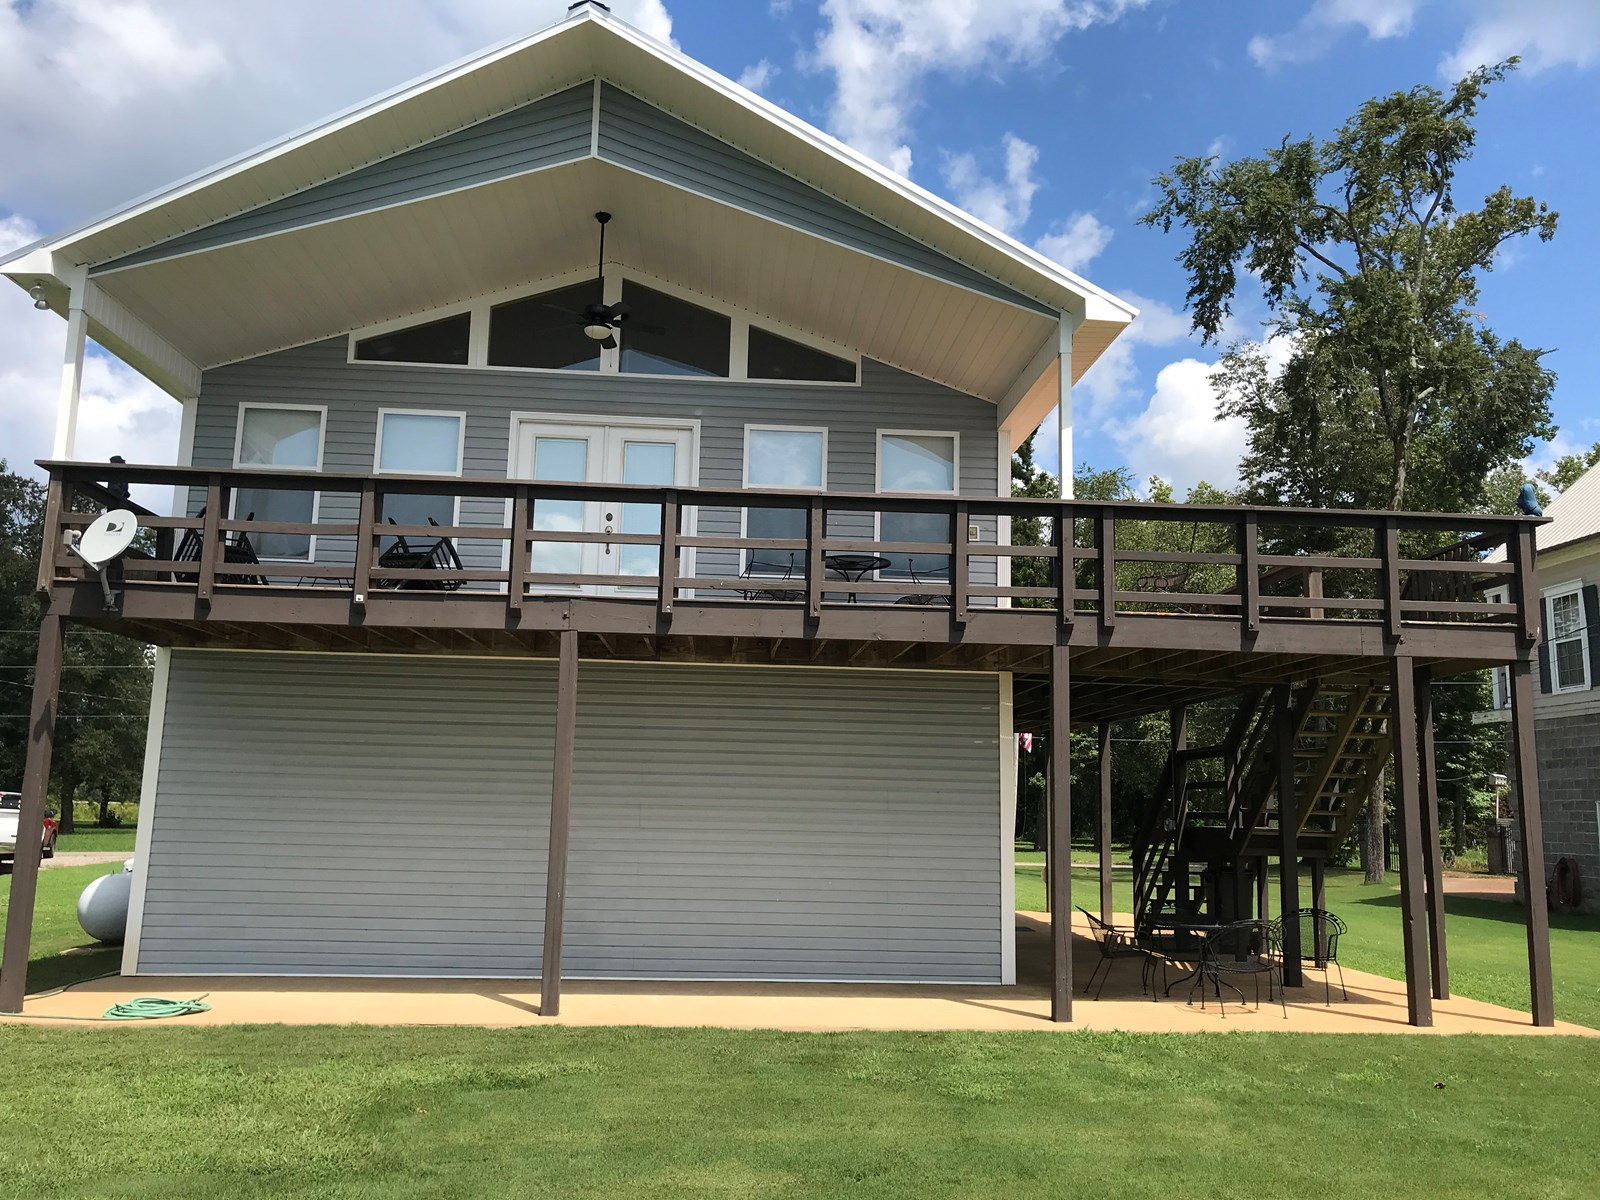 RIVER FRONT HOME FOR SALE IN TN ON THE TENNESSEE RIVER